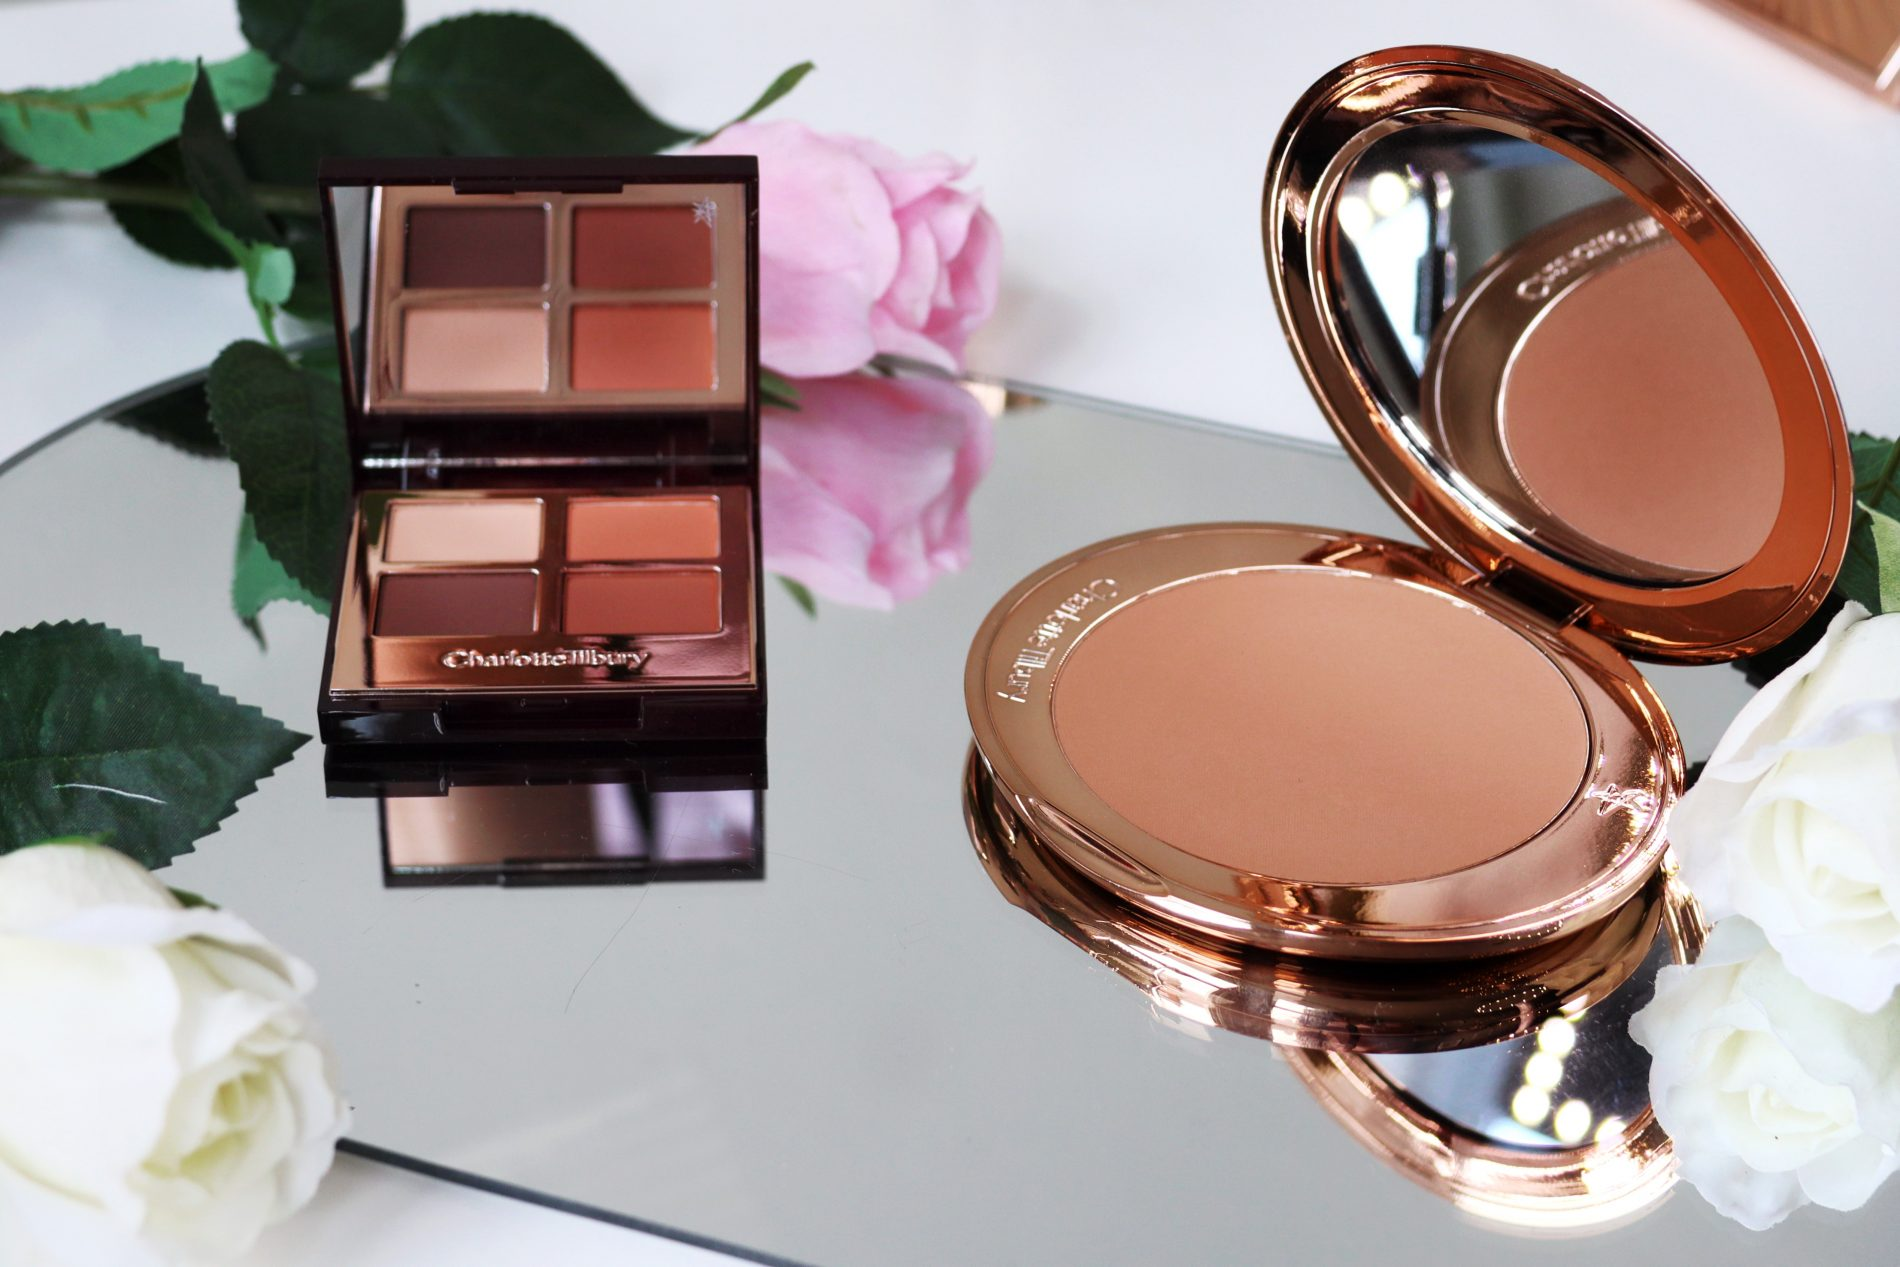 Charlotte tilbury airbrush bronzer and desert haze eyeshadow palette sit open on a mirror surrounded by flowers.